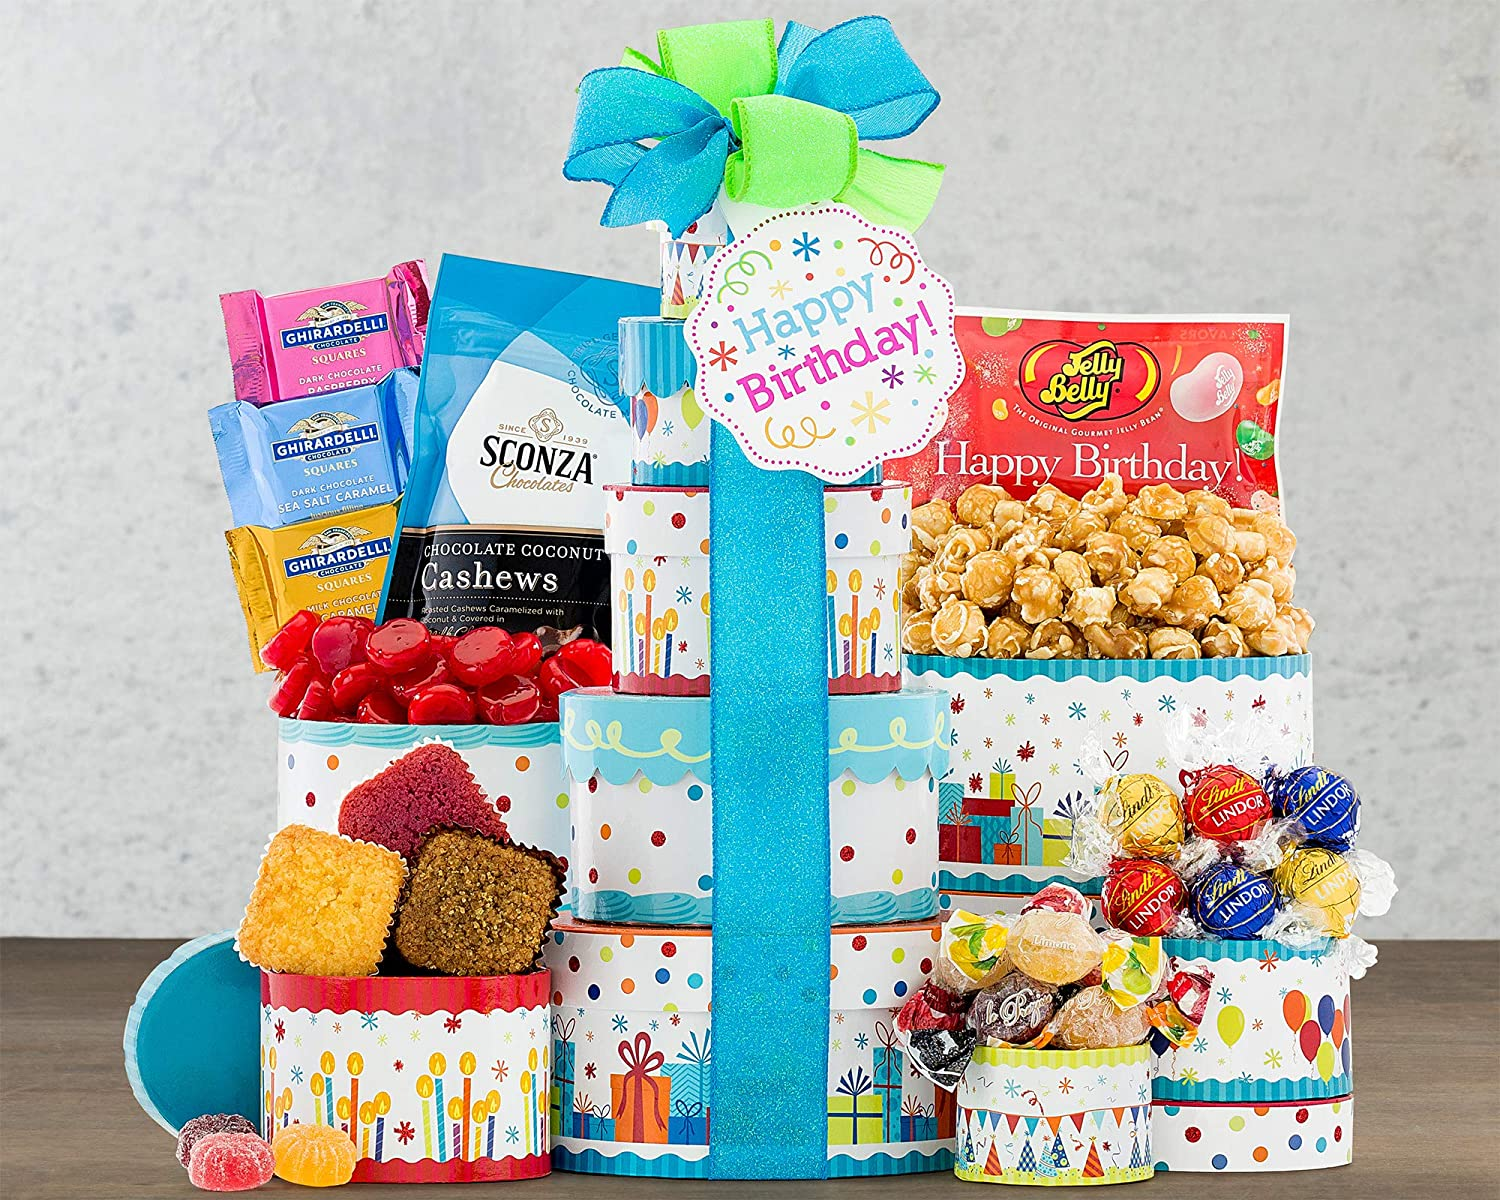 Remarkable Gift Co. Birthday Surprise